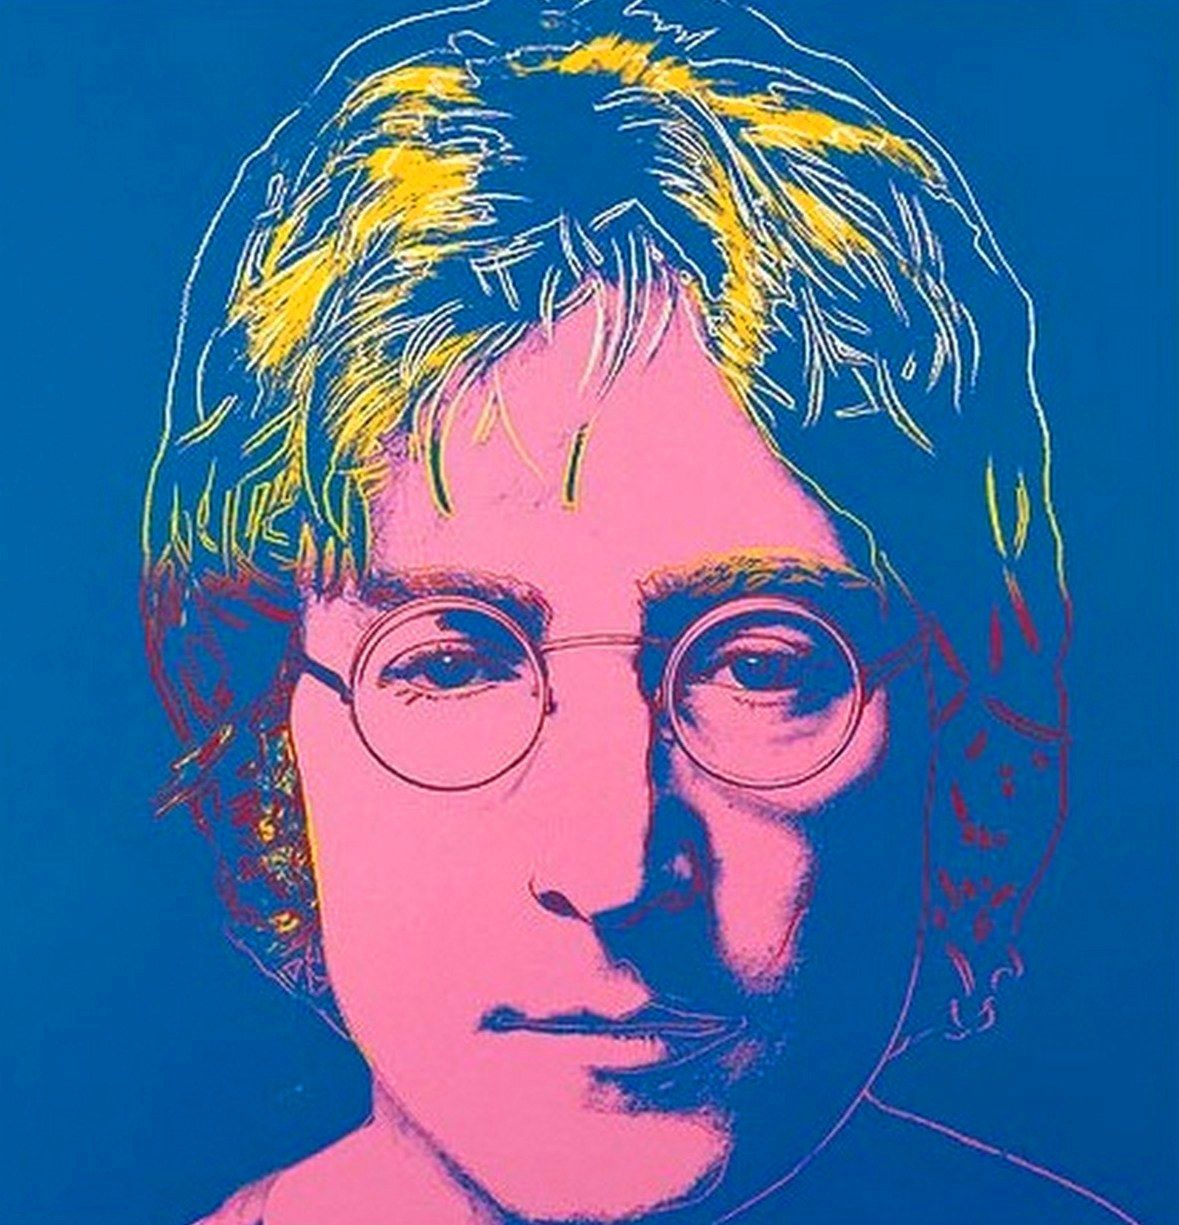 John Lennon By Andy Warhol Pop Art ☆ Pinterest